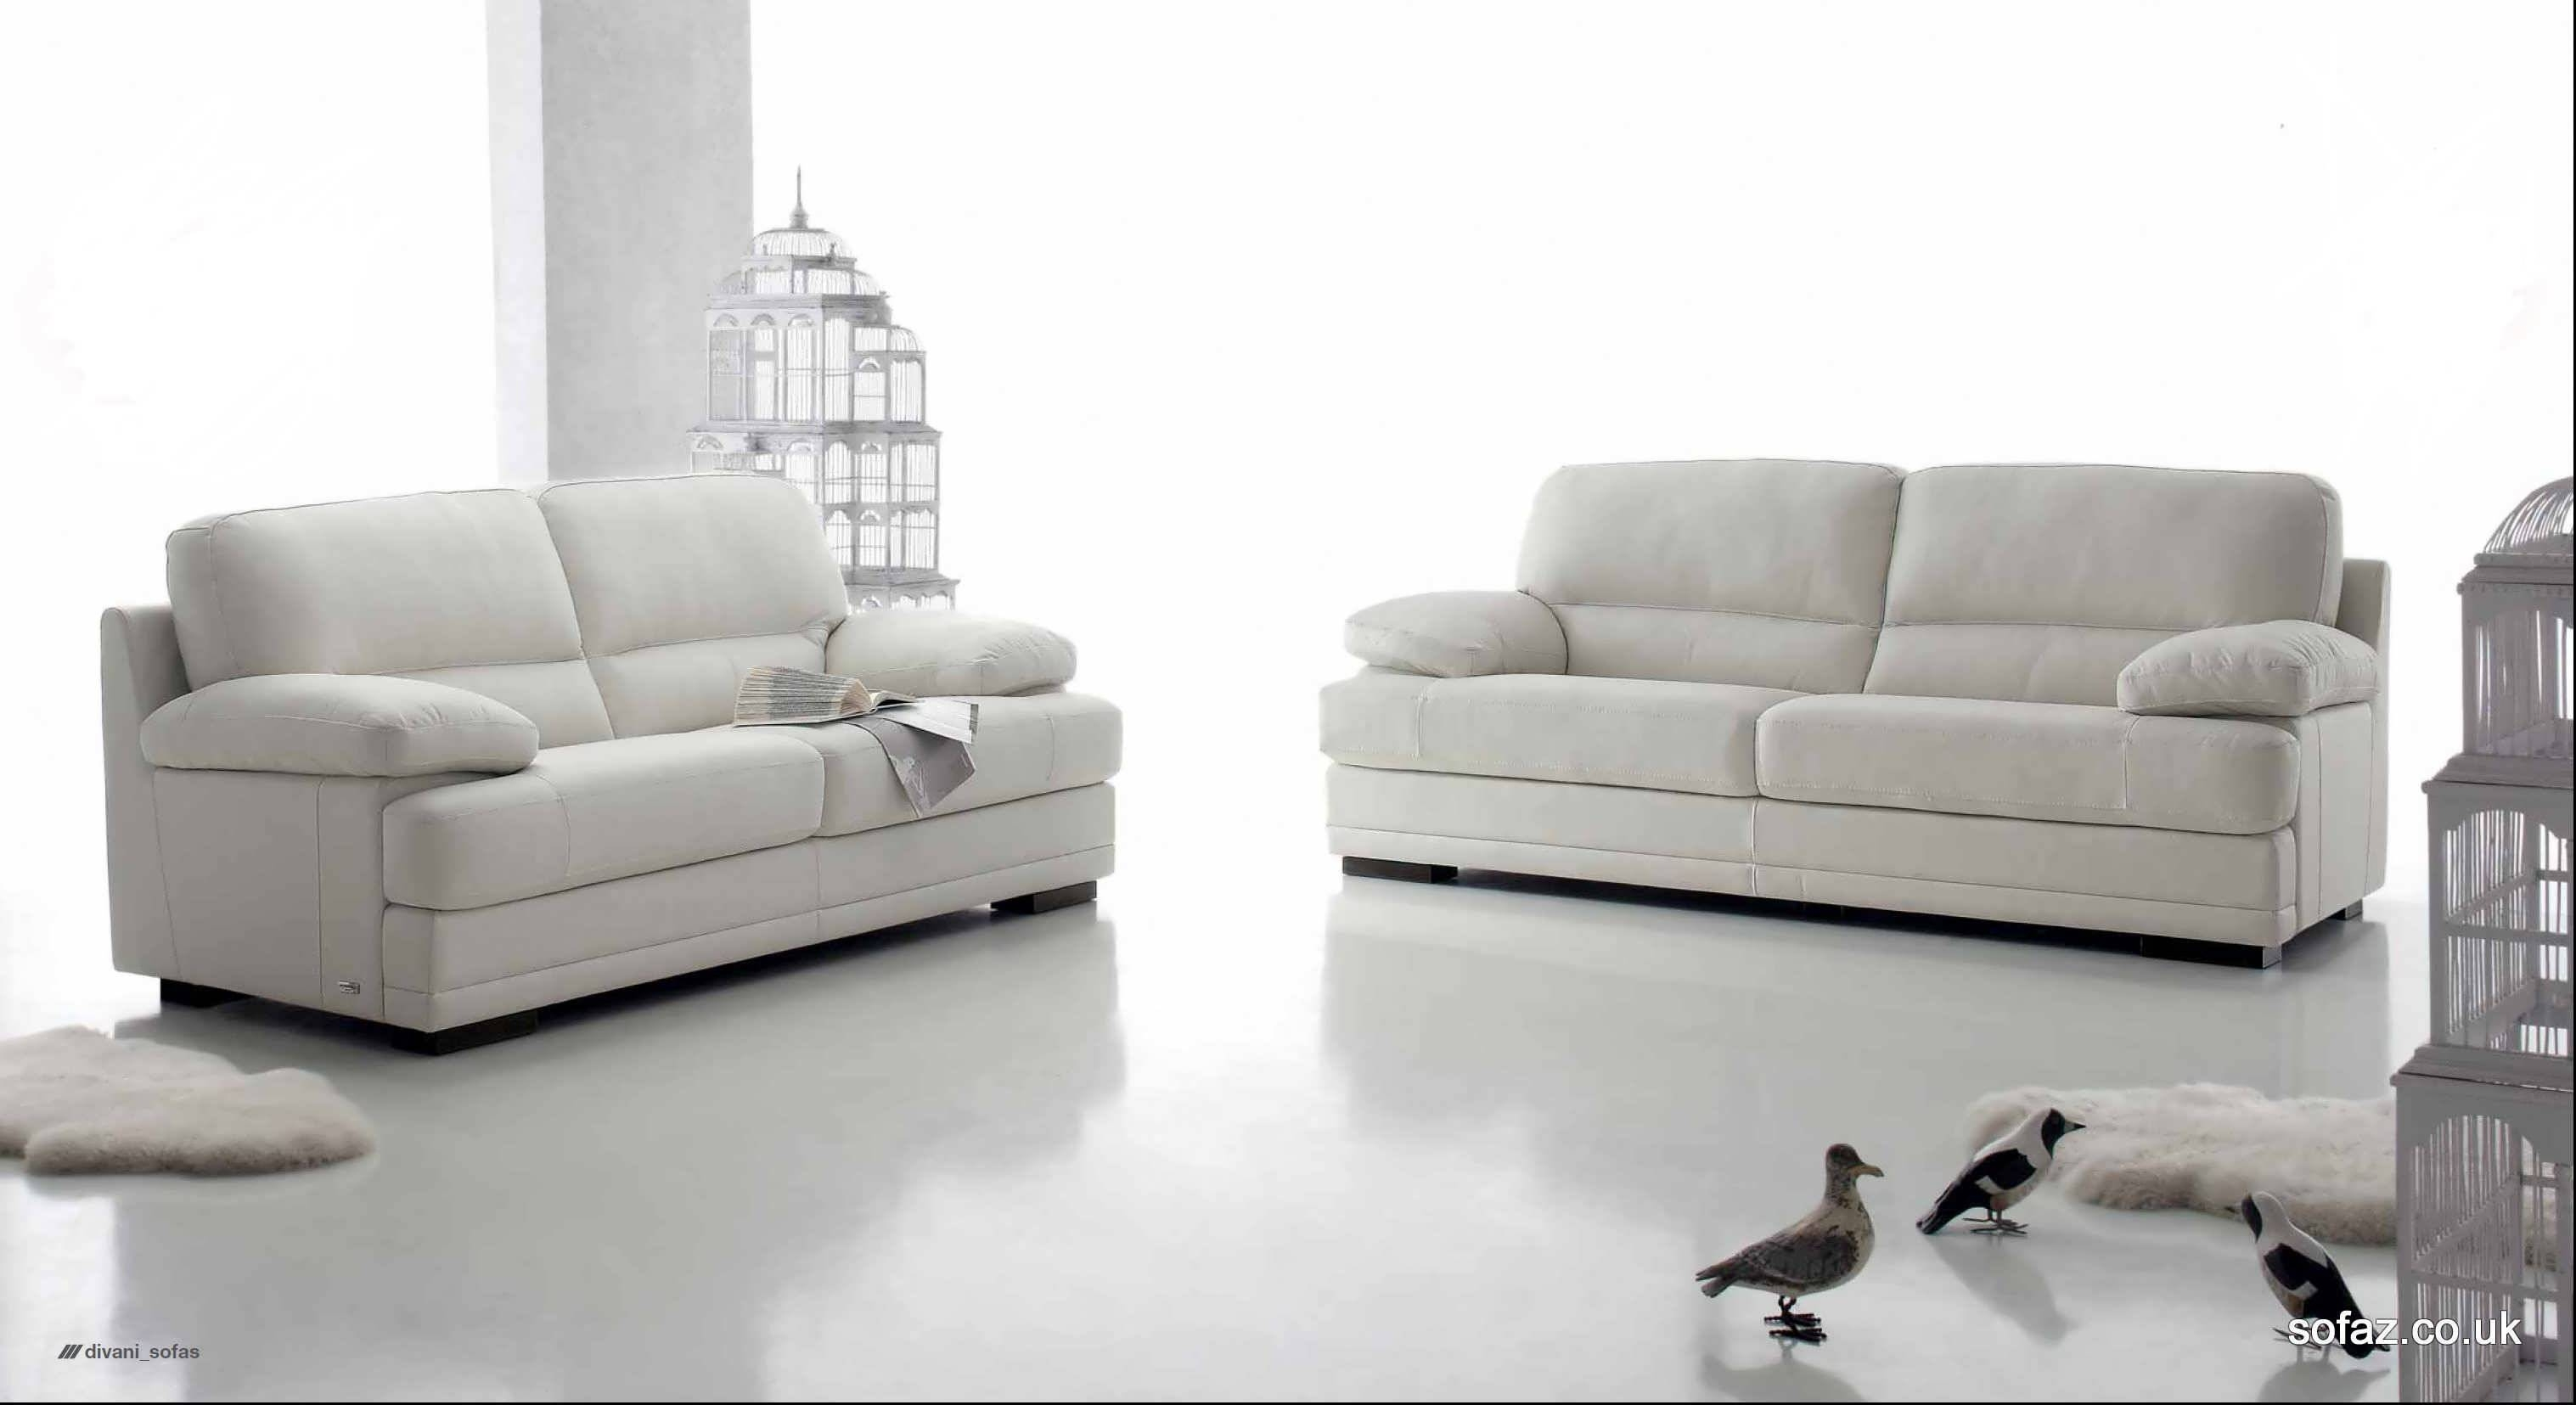 Sofa : Leather Sofas For Sale Sleeper Sofa Chaise Sofa Leather with Italian Leather Sofas (Image 12 of 15)